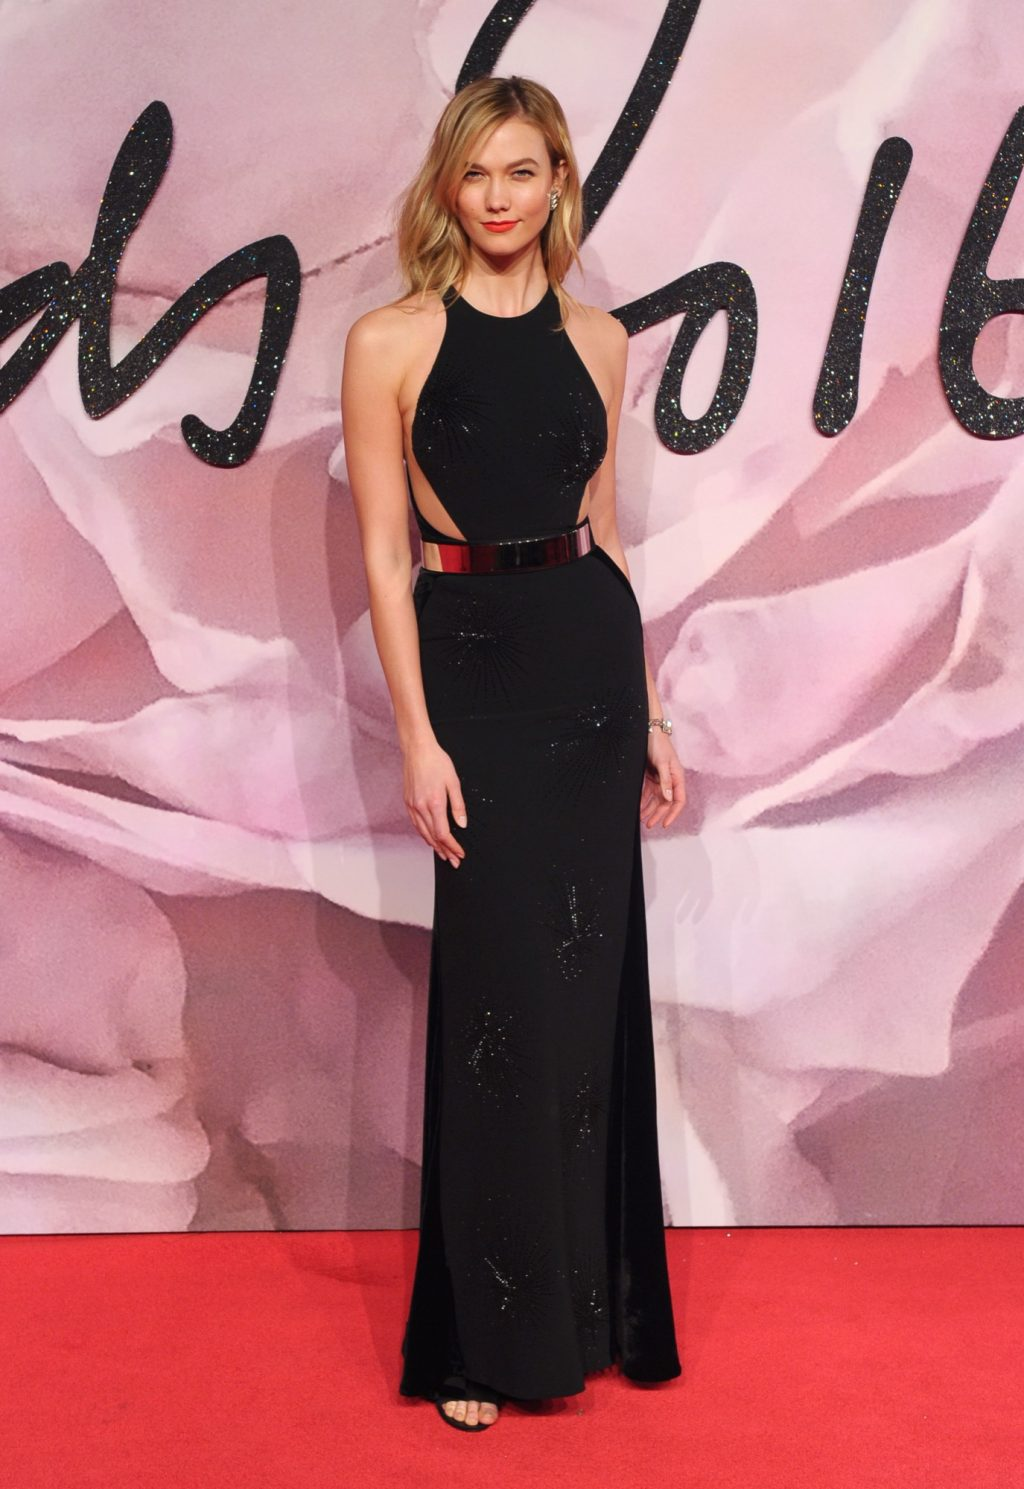 The Fashion Awards 2016 - Karlie Kloss